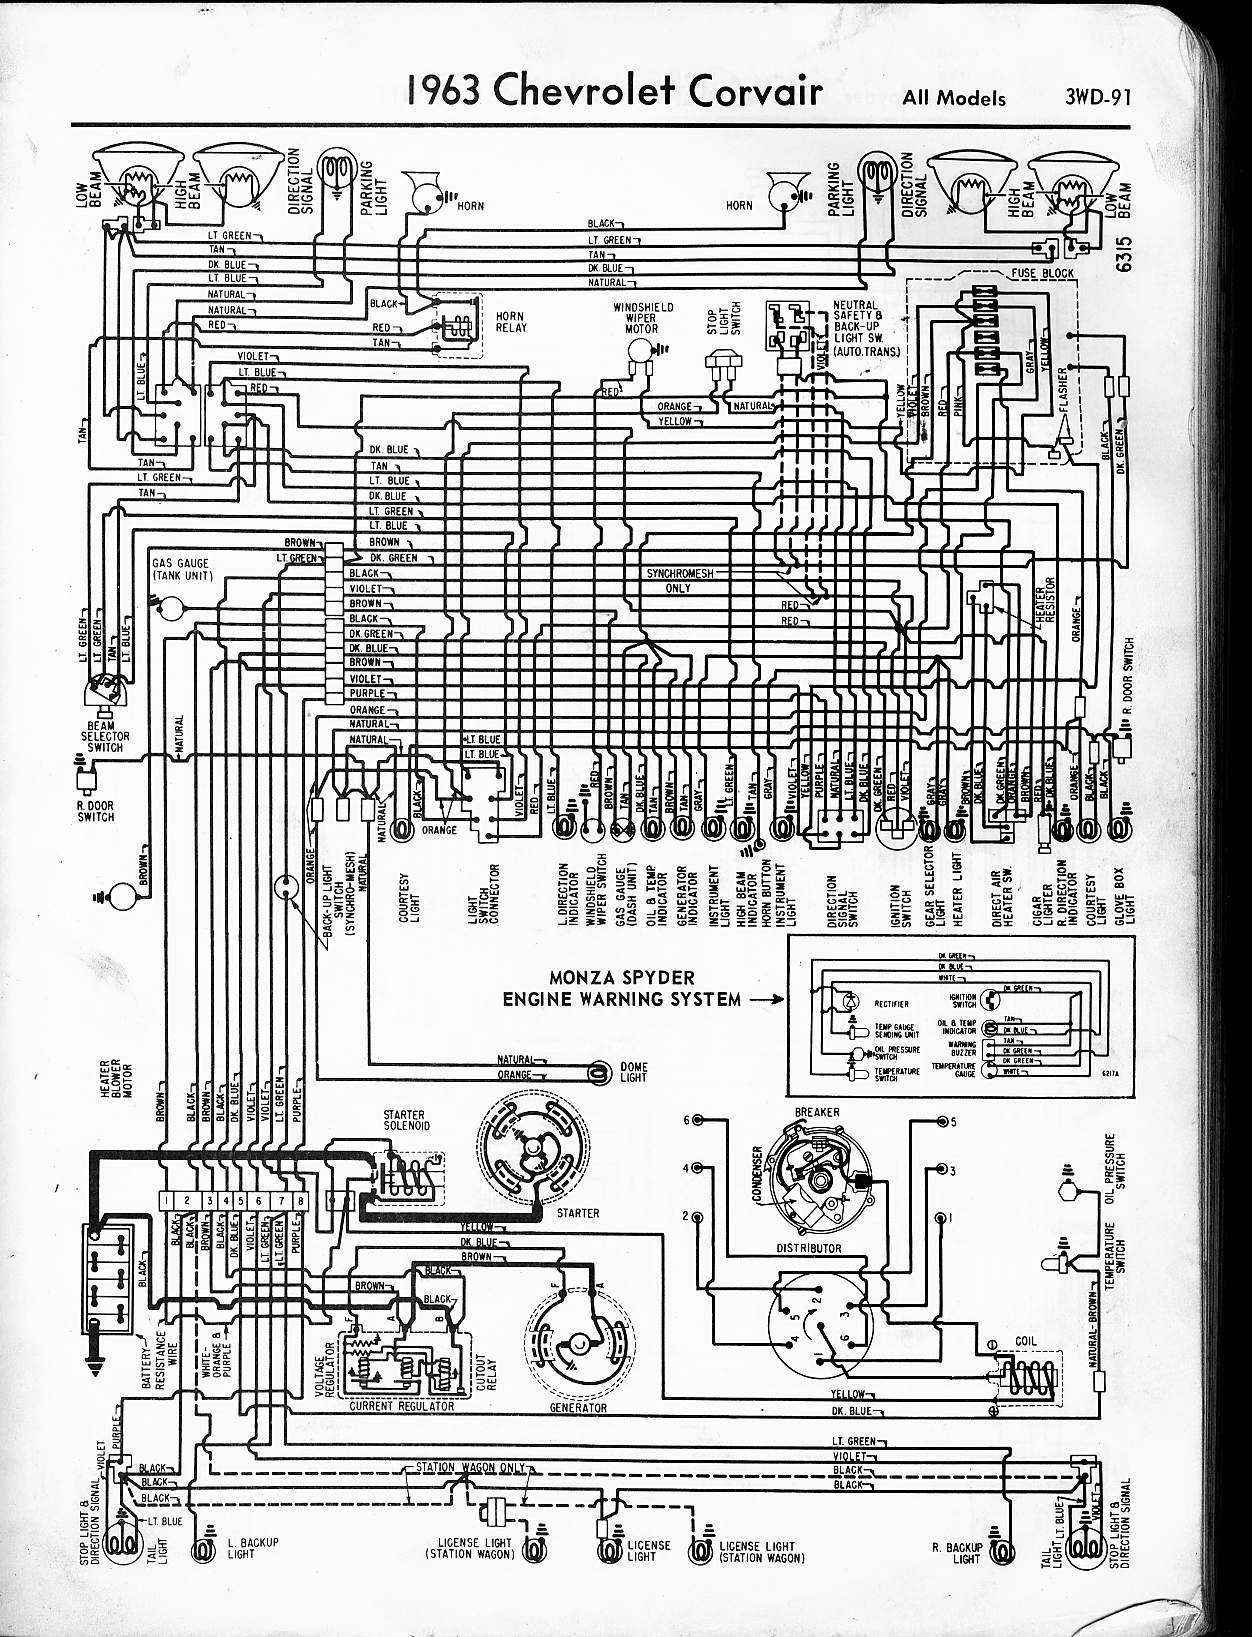 57 Chevy Wiring Diagram | Wiring Liry on 65 ford mustang wiring diagram, 65 vw bug wiring diagram, 1965 chevy truck wiring diagram, 06 impala starter wiring diagram, 65 ford ranchero wiring diagram, 65 buick skylark wiring diagram, 65 buick electra wiring diagram, 1965 chevy impala wiring diagram, 1961 impala wiring diagram, 65 pontiac gto wiring diagram, 65 lincoln continental wiring diagram, 65 ford thunderbird wiring diagram, 1964 chevy impala wiring diagram, 1962 chevy impala wiring diagram, 62 chevy impala wiring diagram, 65 ford galaxie wiring diagram, 63 chevy impala wiring diagram, 72 chevy impala wiring diagram, 66 chevy impala wiring diagram, 1965 chevy nova wiring diagram,